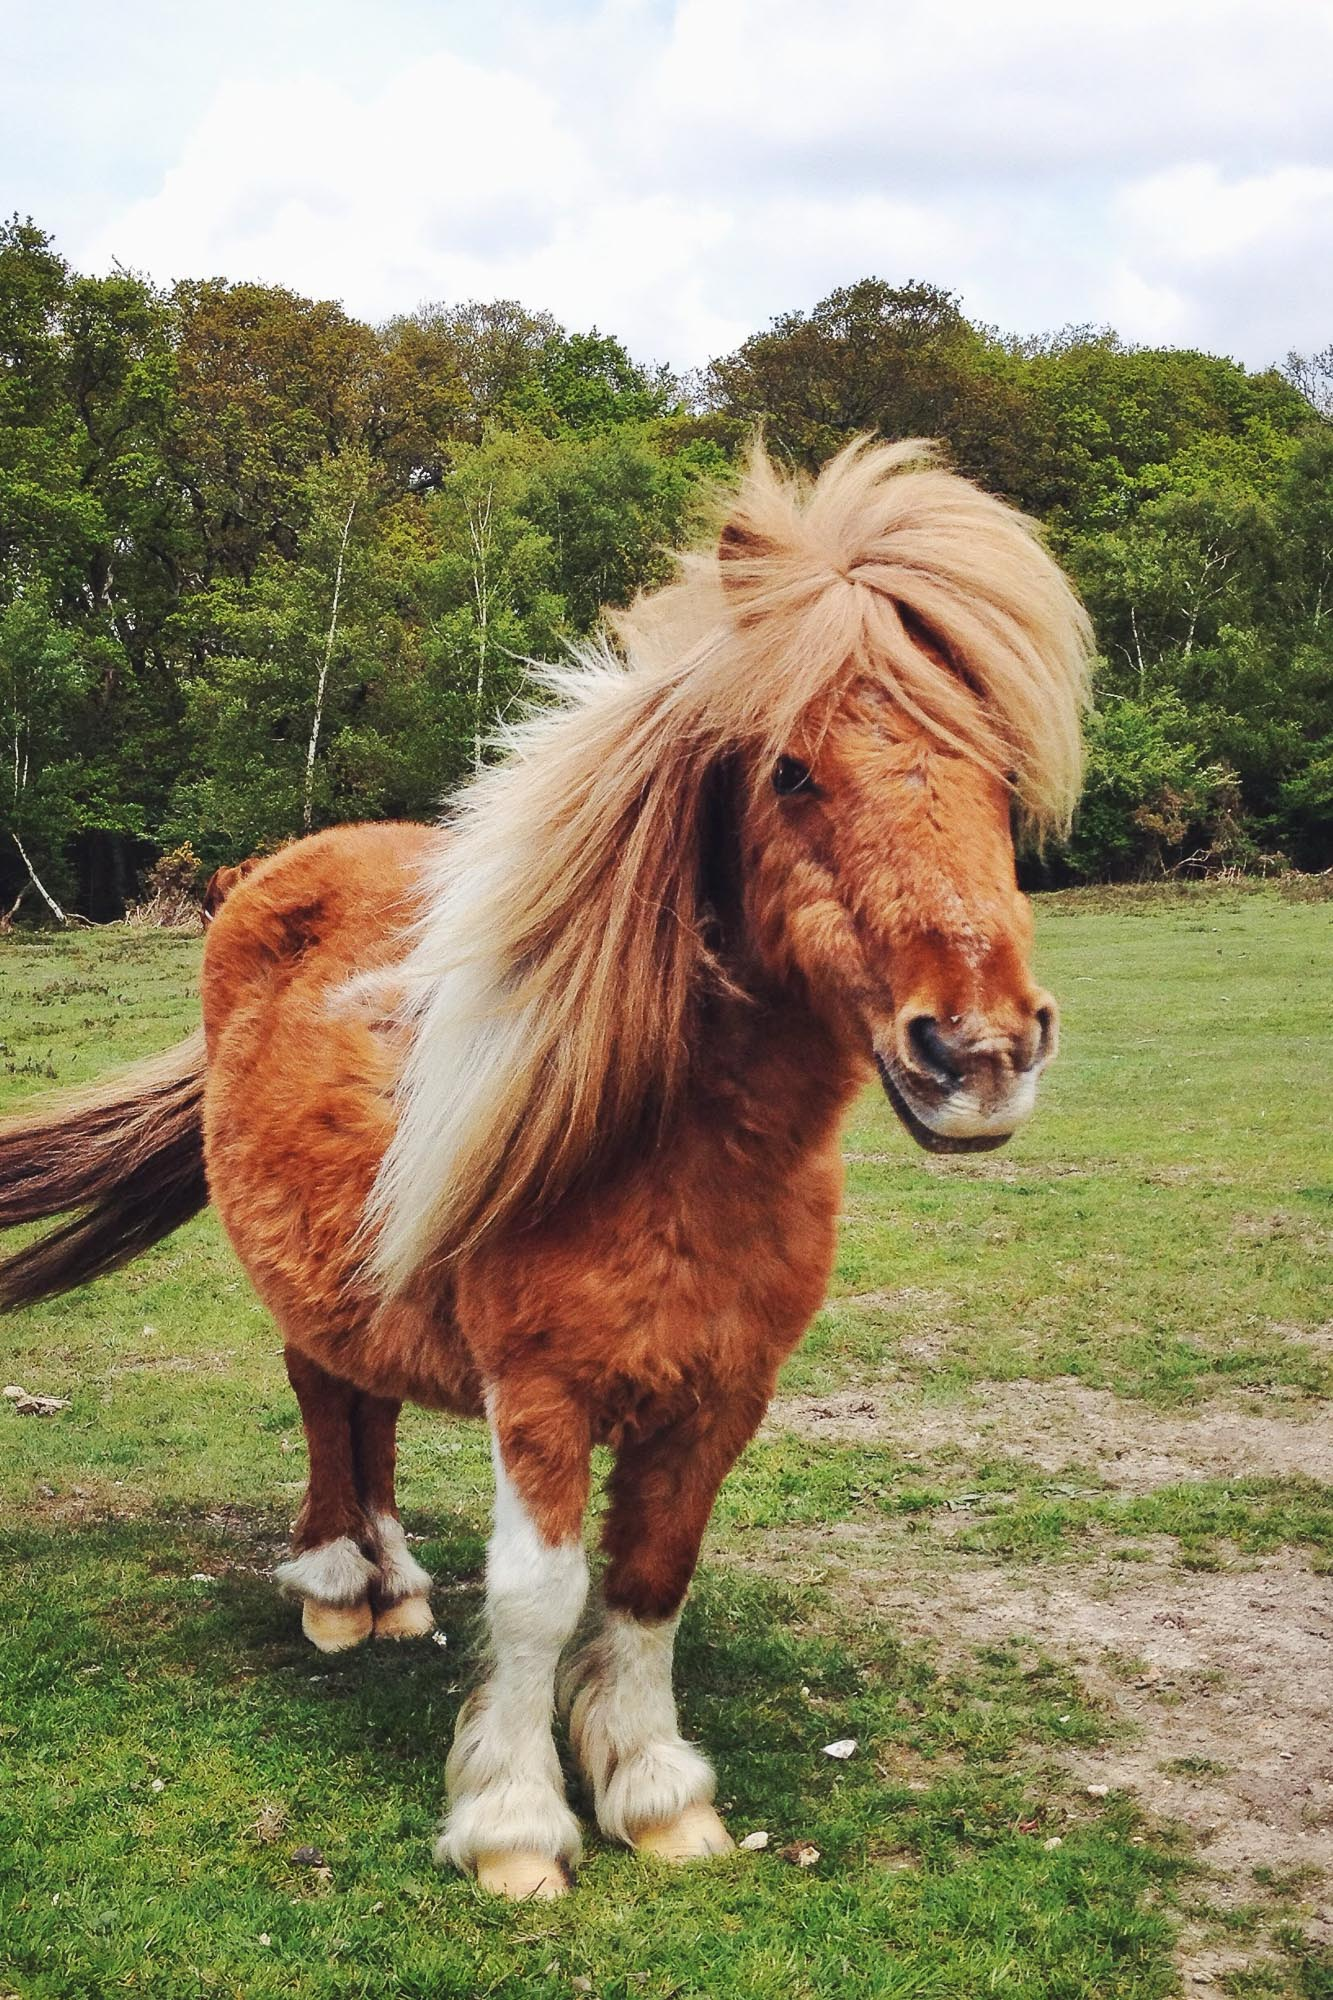 A New Forest Pony, a breed found in the New Forest National Park in southern England, UK